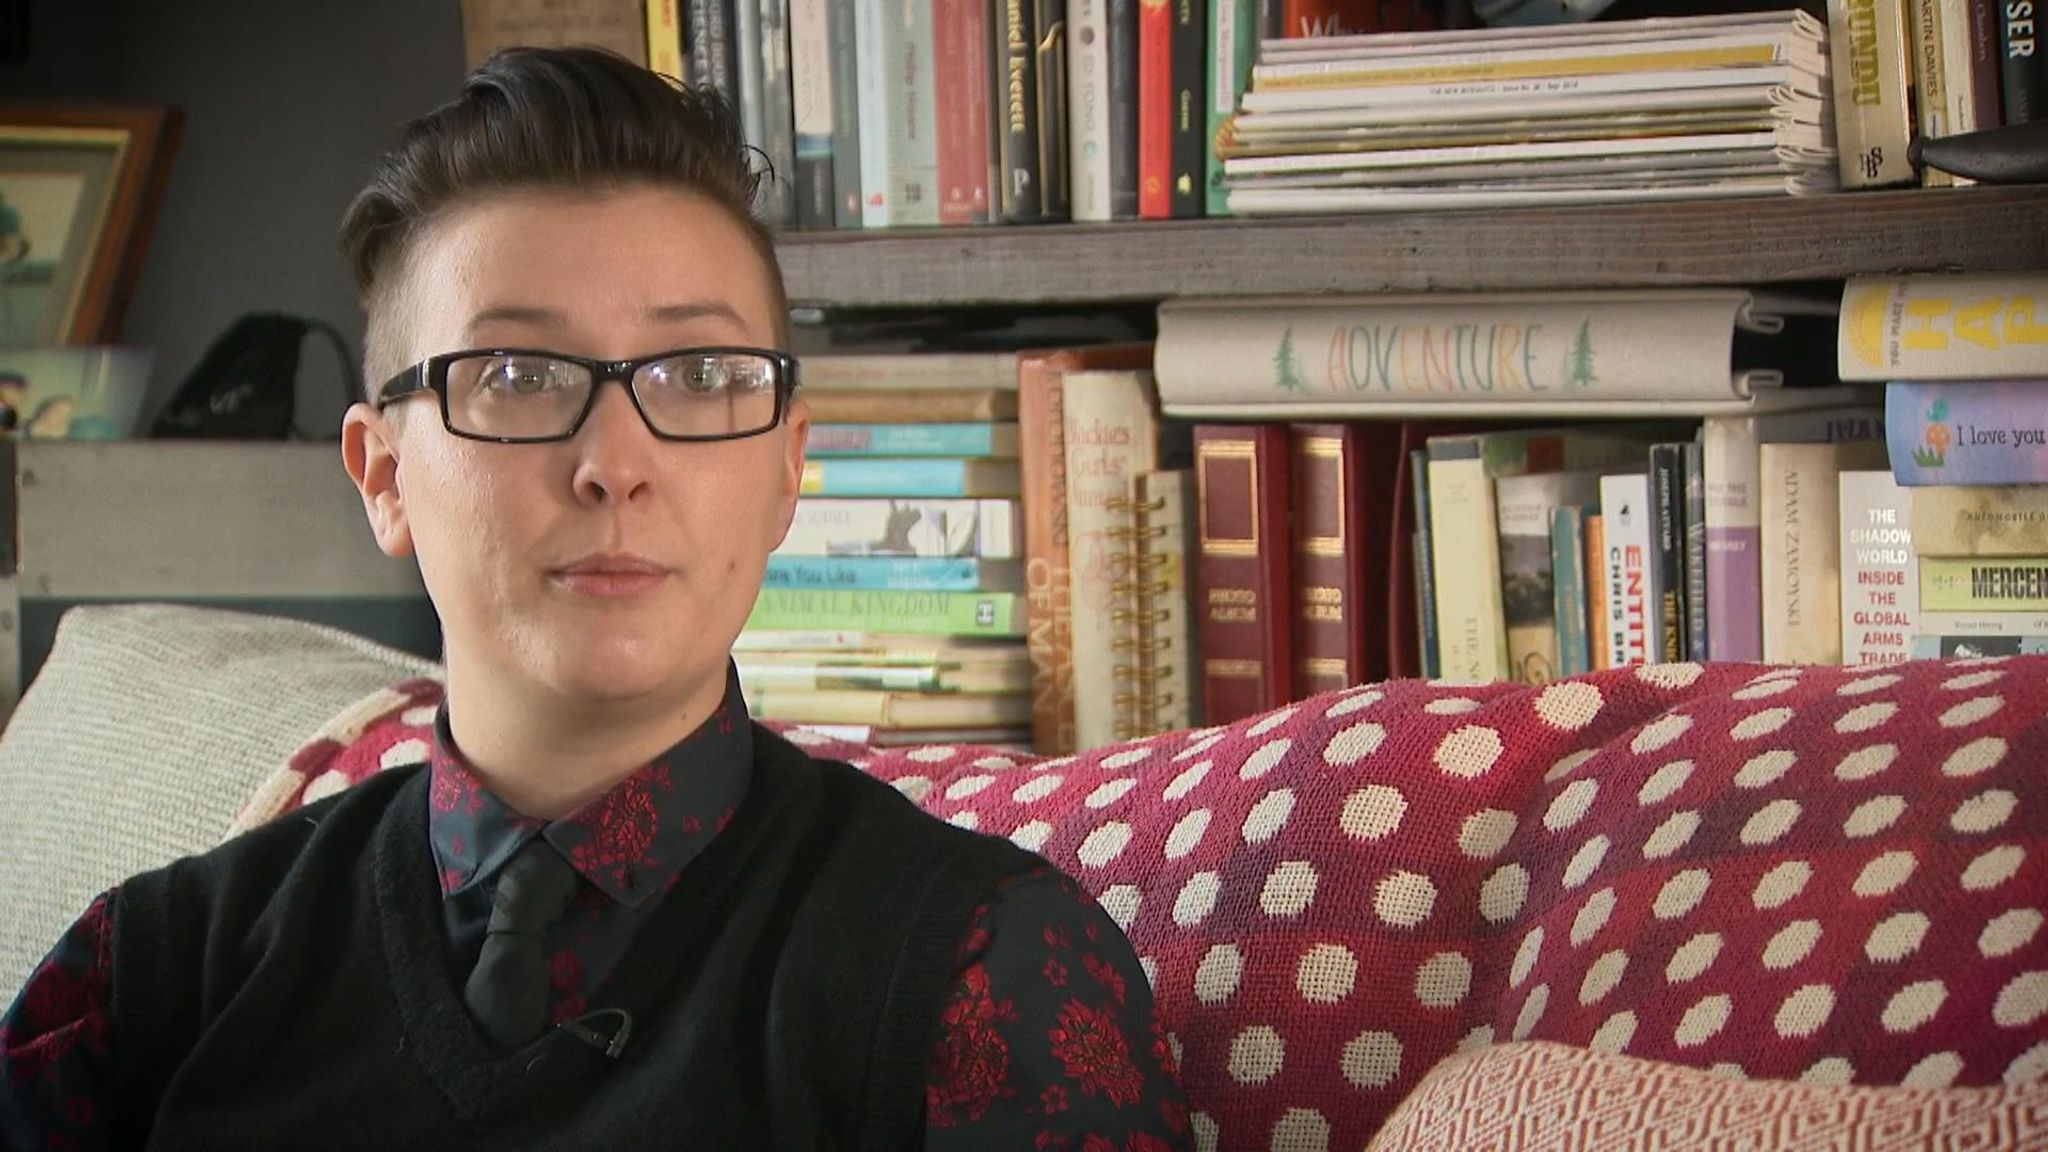 'Hundreds' of young trans people seeking help to return to original sex